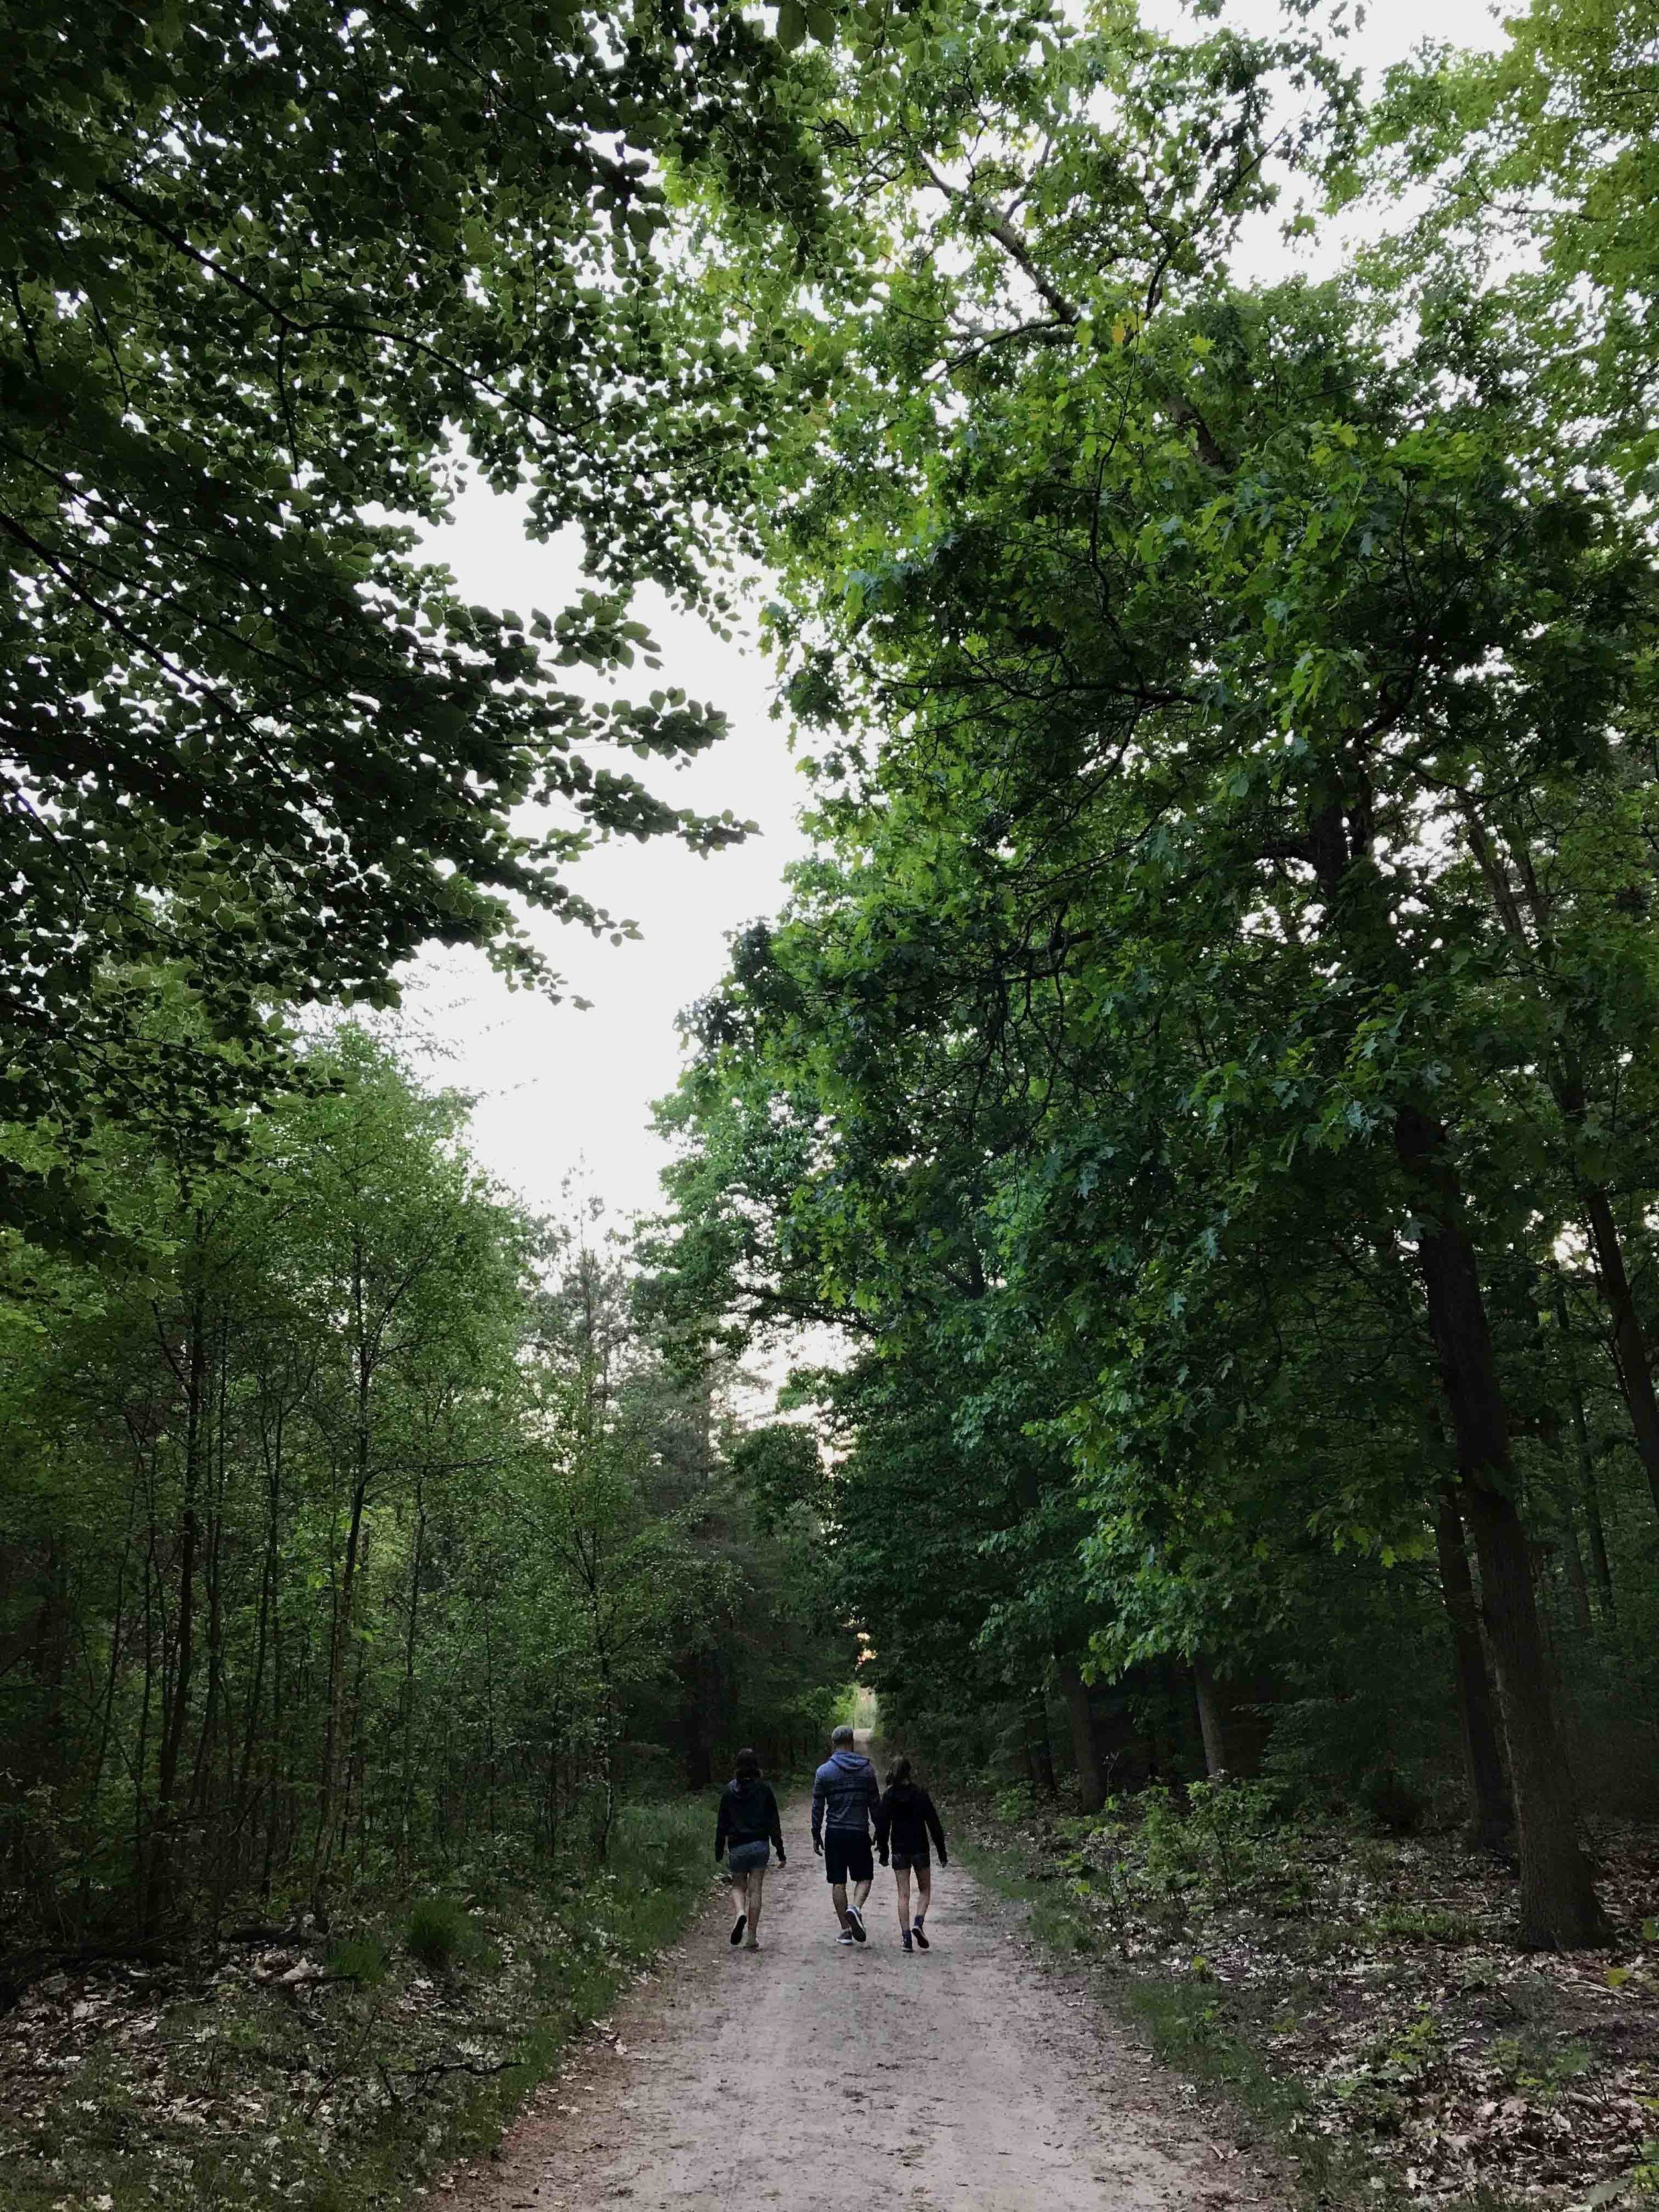 My family exploring the magical area around Vierhouten and Emst. Holland 2018.